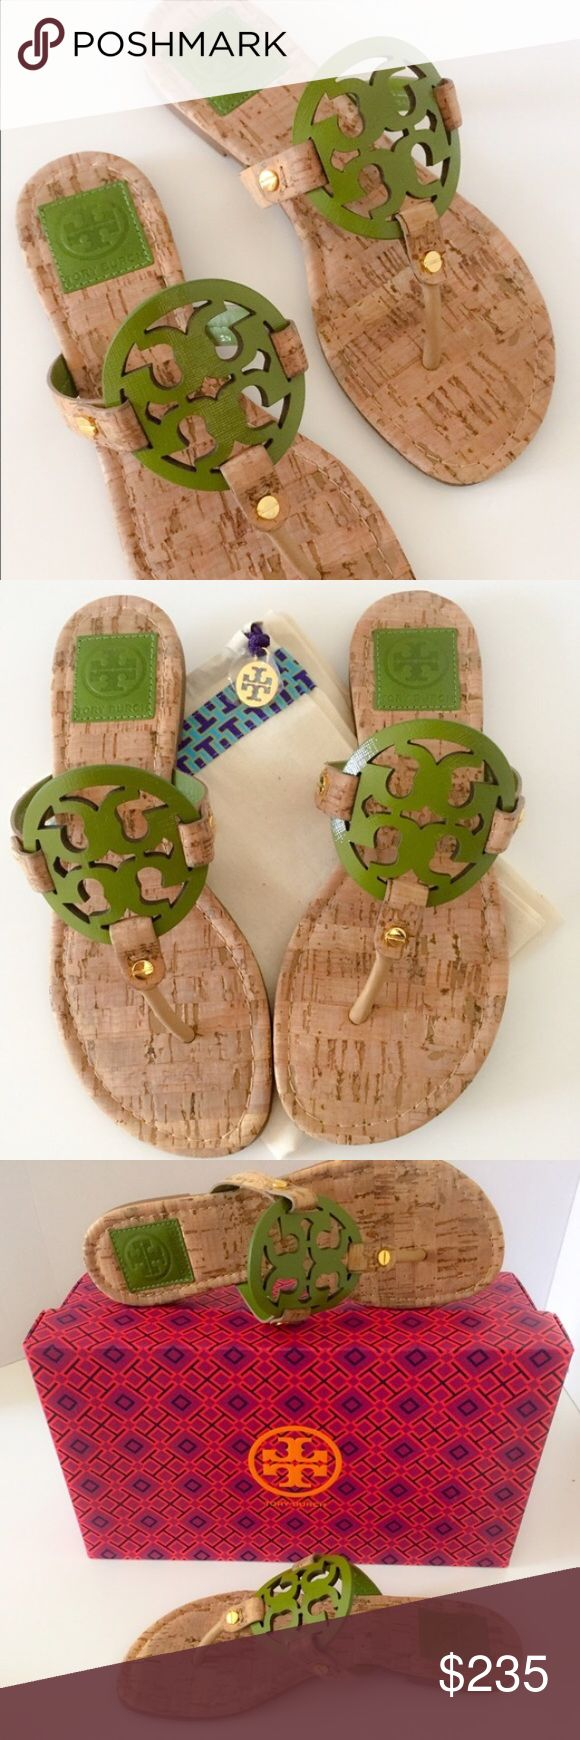 RARE Tory Burch Miller Patent Saffiano/Cork Tory Burch Miller Patent Saffiano/Cork Sandals NIB. Rare leaf green/natural honey wheat. Worn uncle; like new. PRICE FIRM. Tory Burch Shoes Sandals